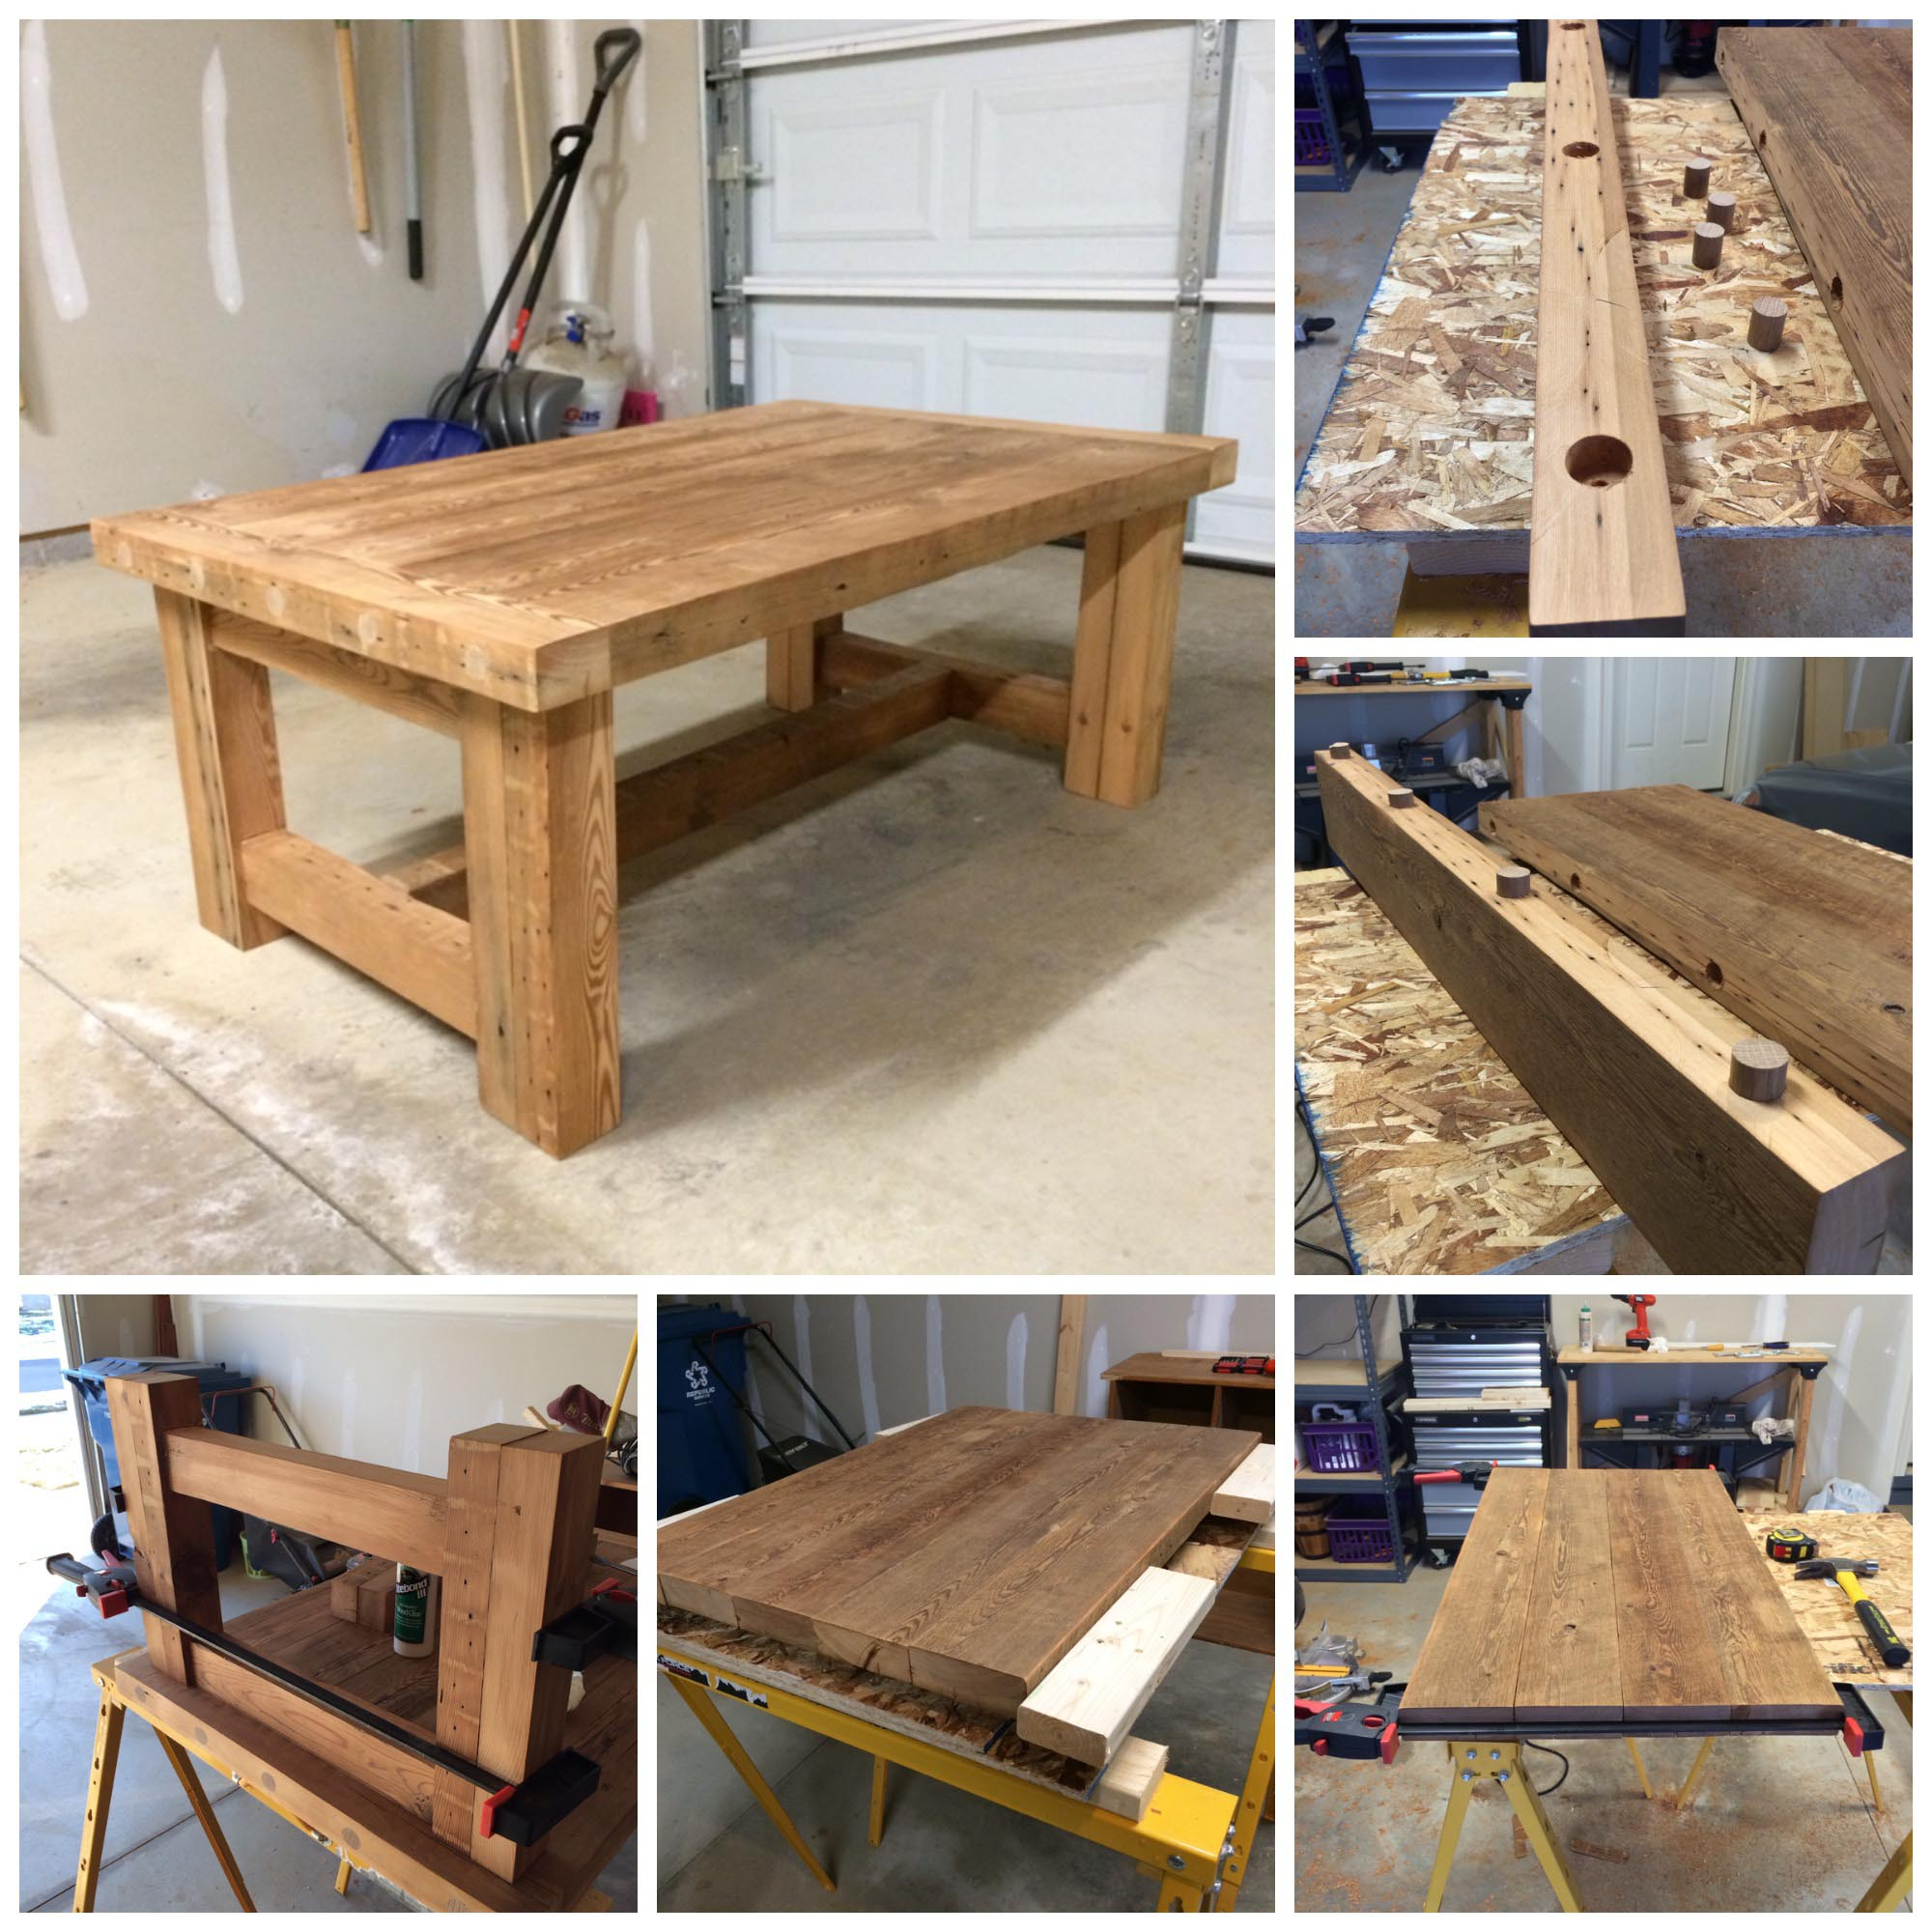 Coffee Table Plans are a Real Help for Creating Boards ... on Coffee Table Plans  id=14058